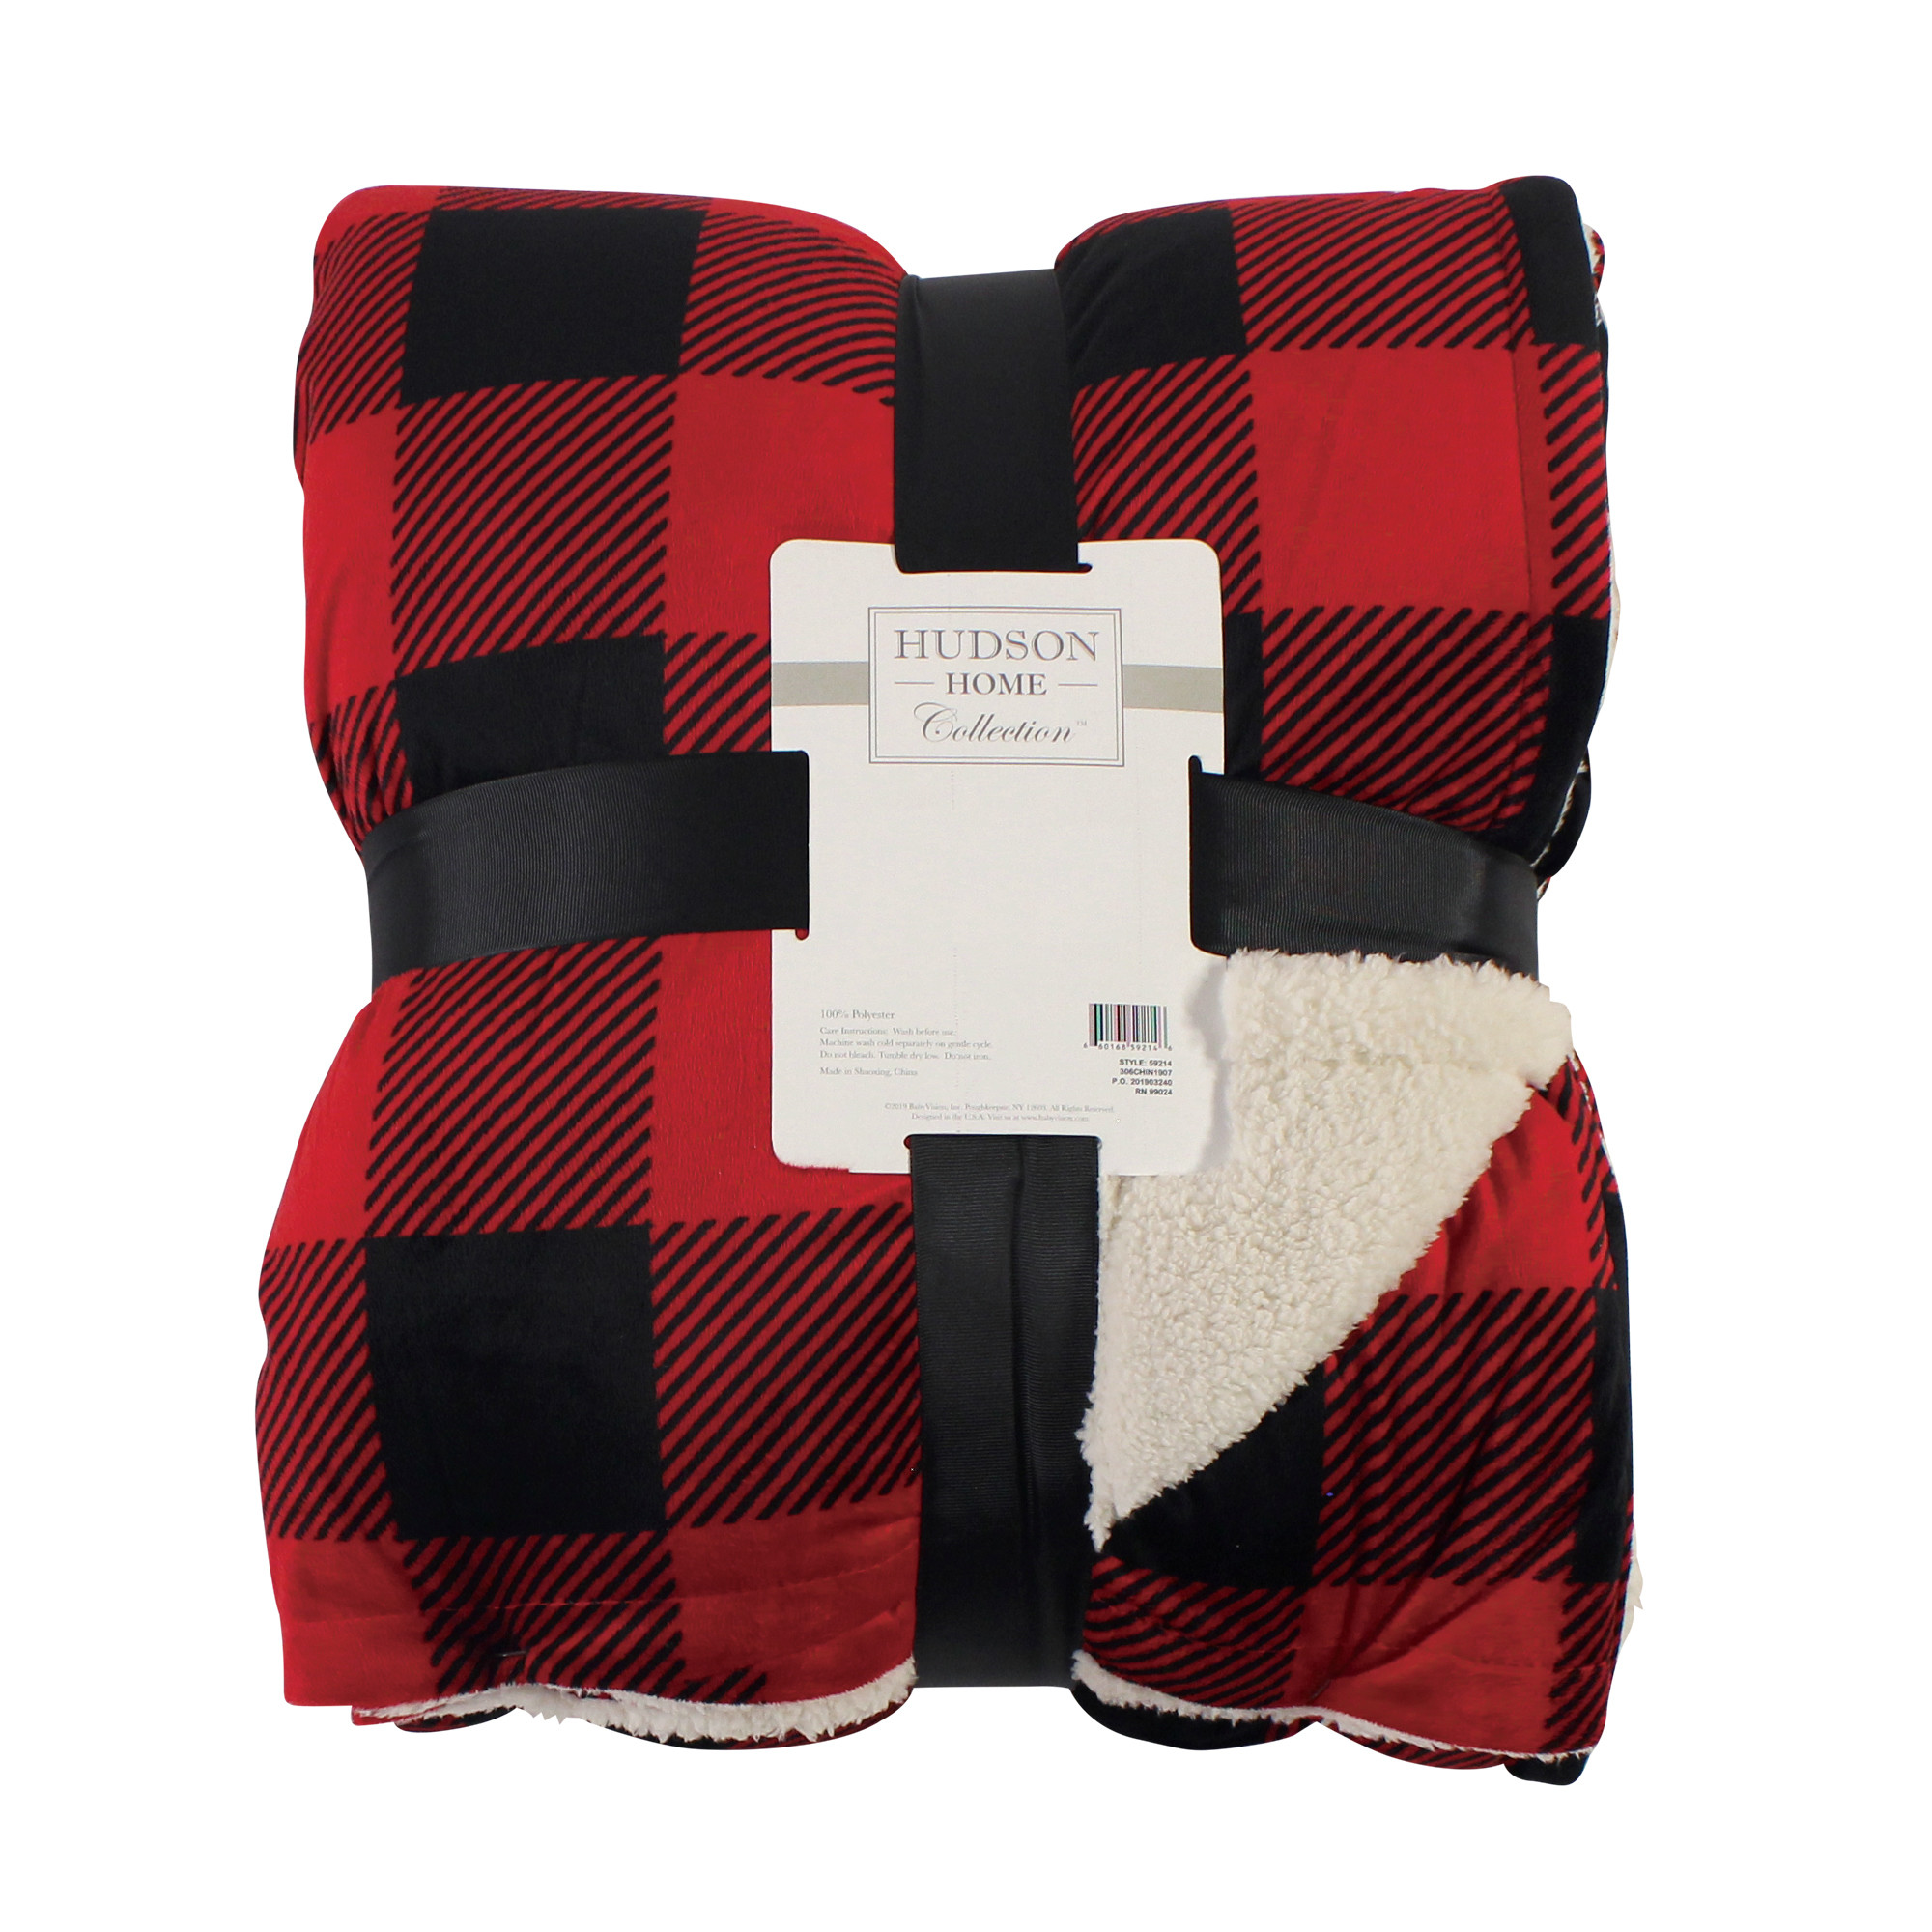 Hudson Baby Home Mink Blanket with Sherpa Back Gray Plaid Sherpa 60X80 in. Oversize Throw